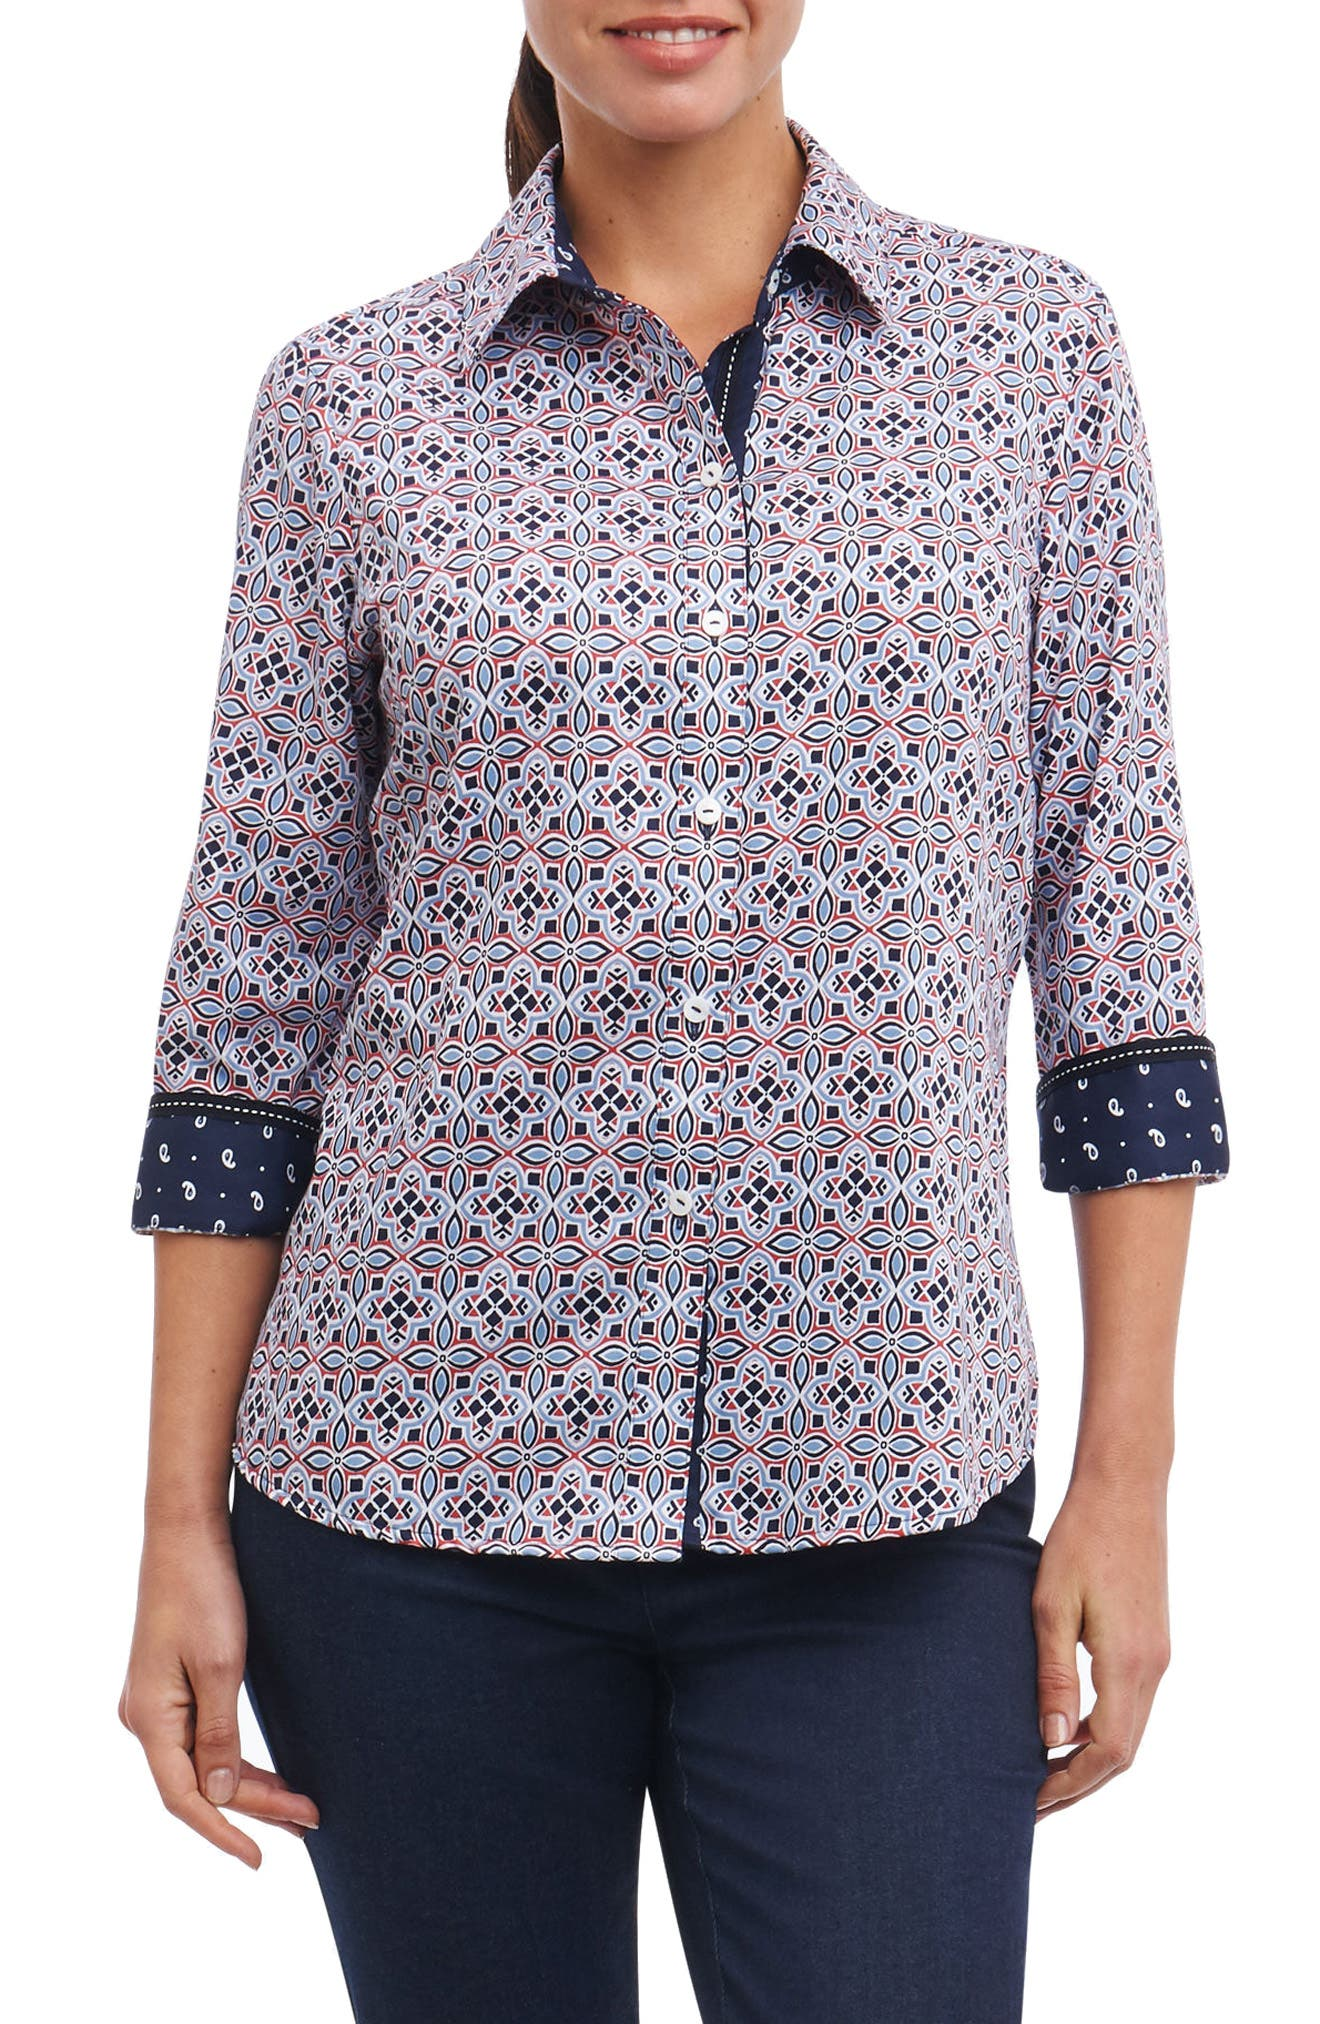 Ava Non-Iron Tile Print Cotton Shirt,                         Main,                         color, Multi